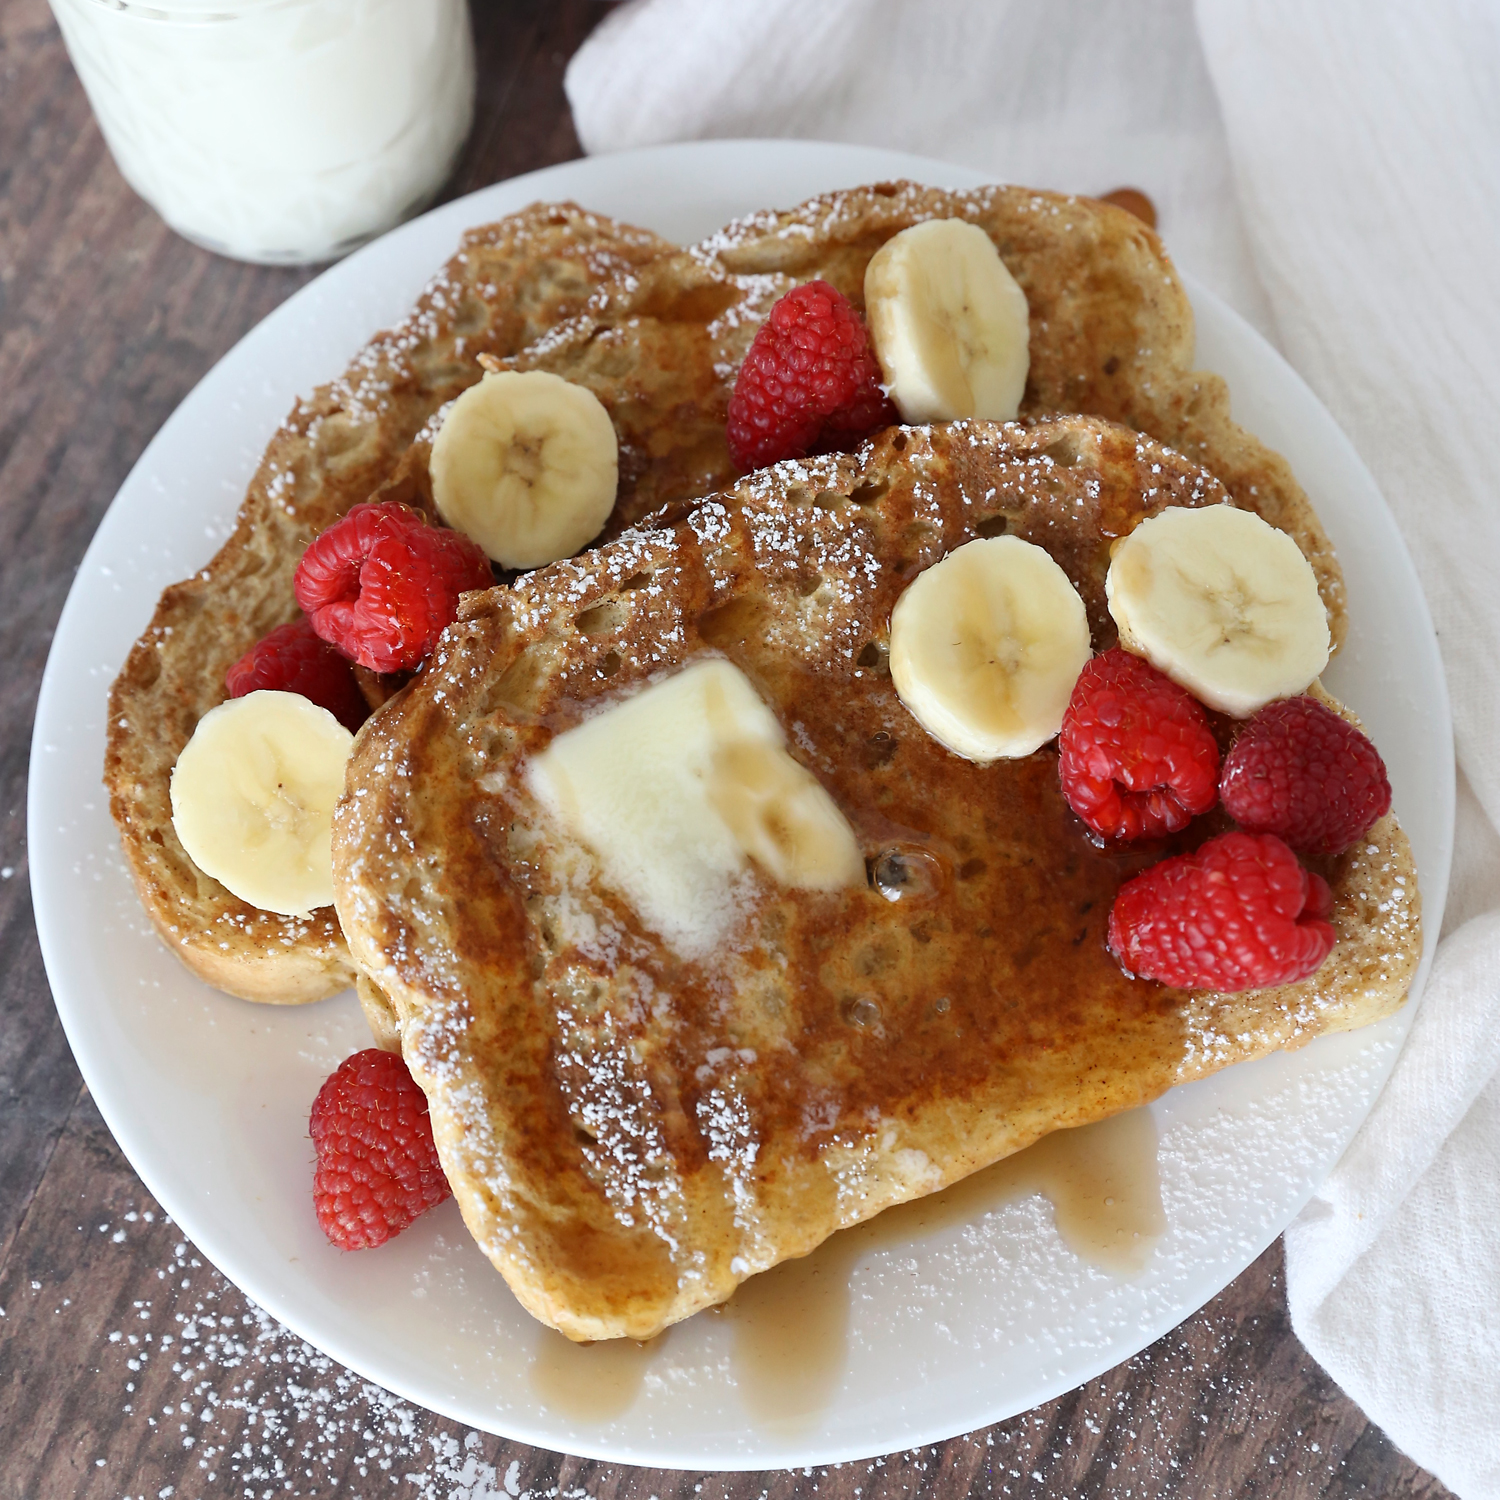 French toast with bananas and raspberries